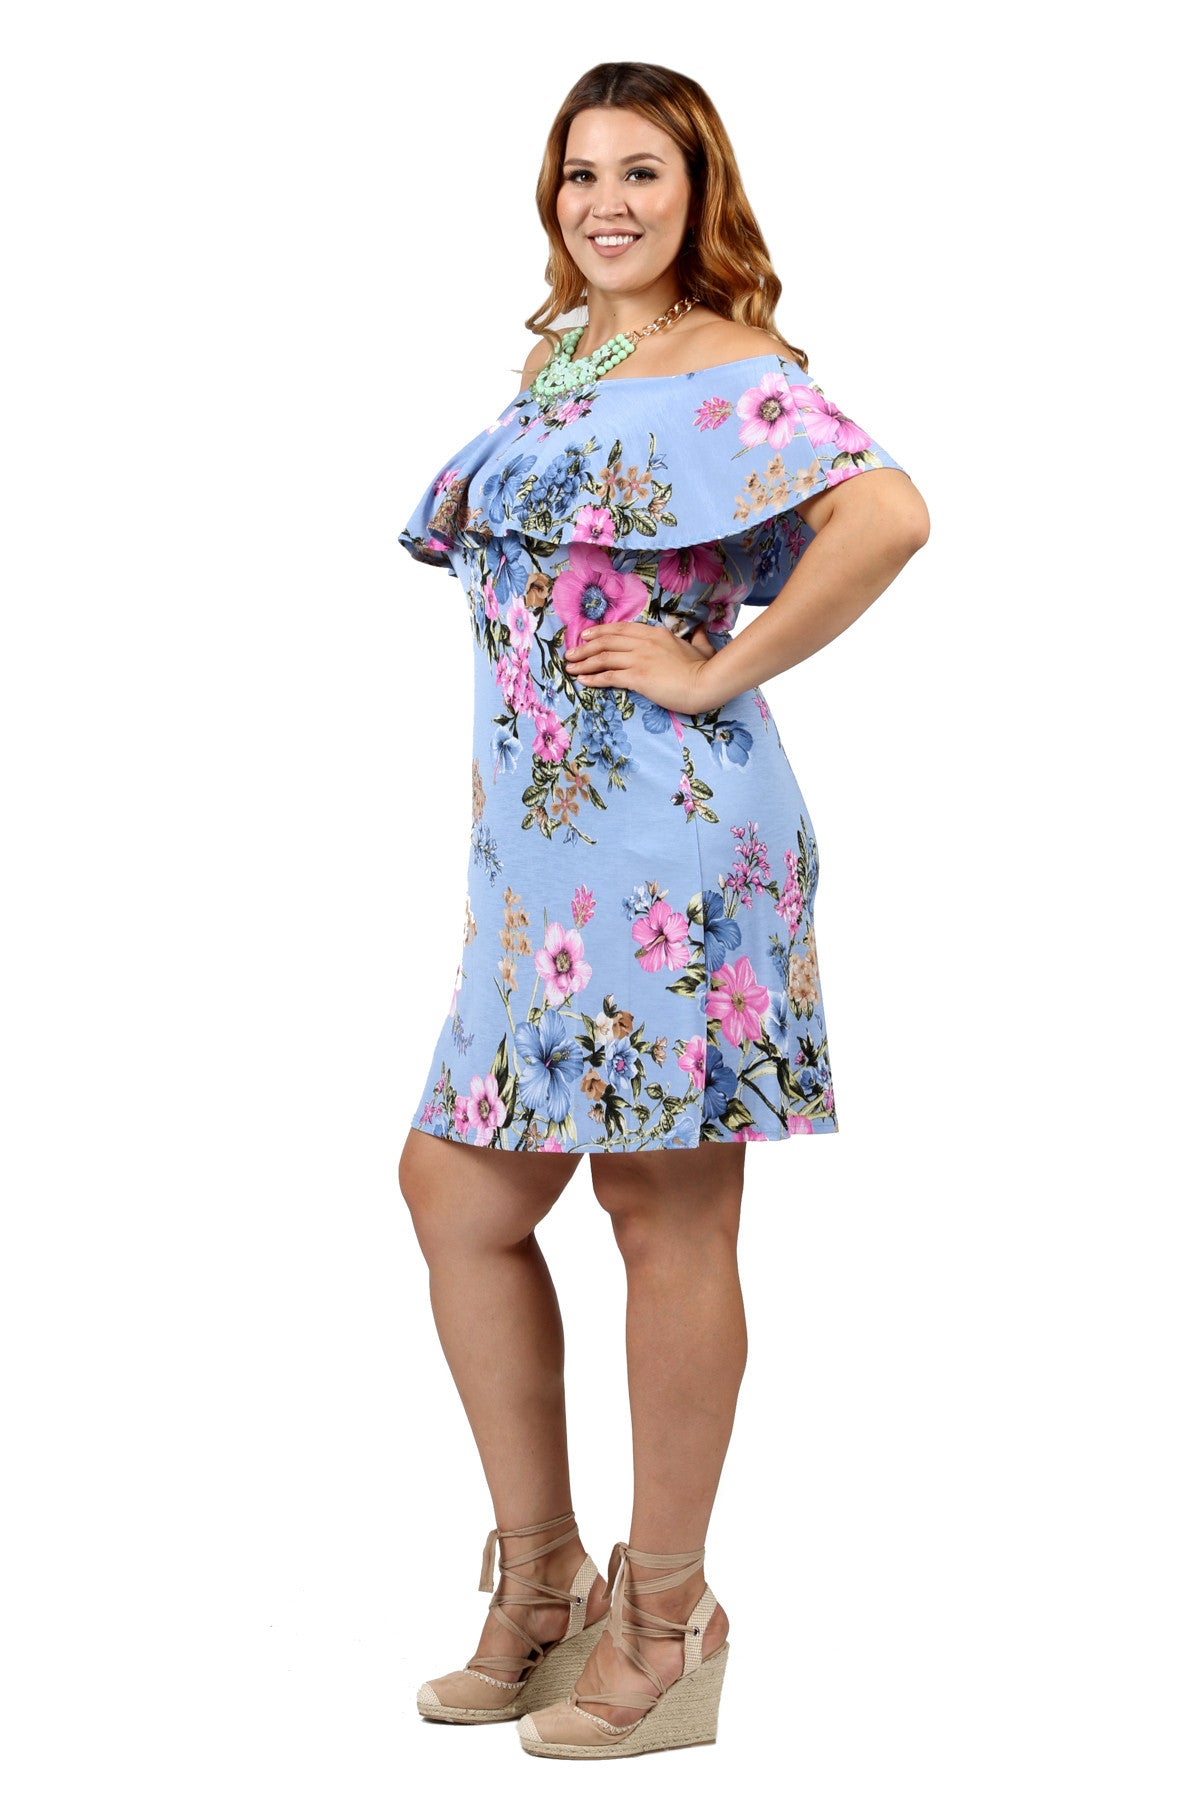 6d426cb59ba5 Xehar Women s Plus Size Off Shoulder Ruffle Floral Print Dress ...